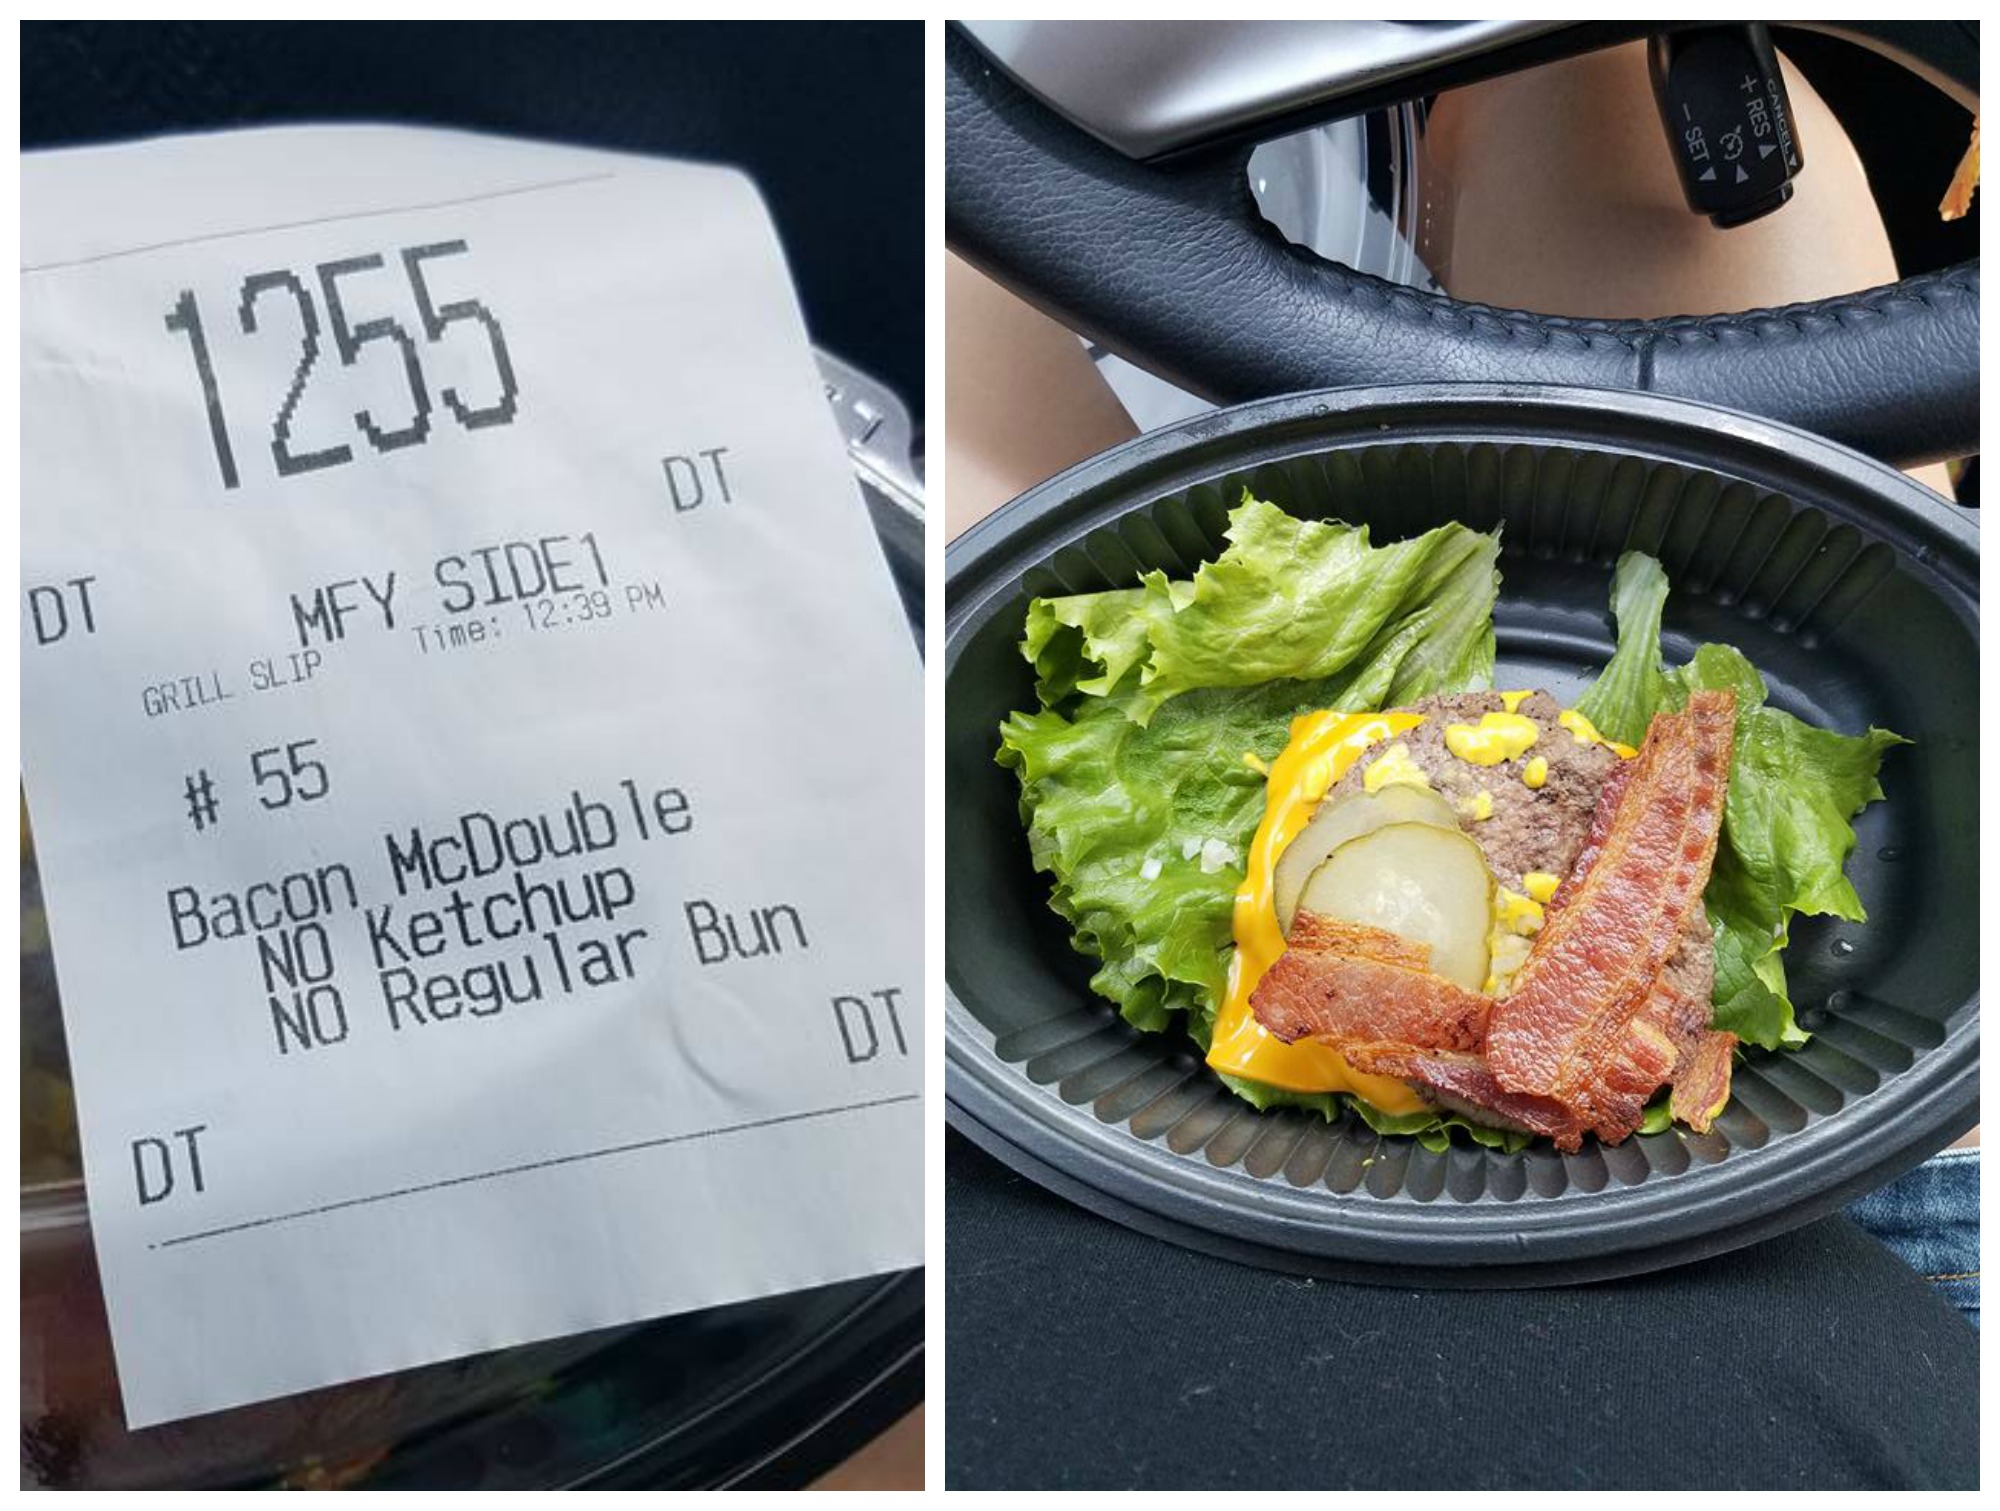 Keto Diet Fast Food Options - Crafty Morning